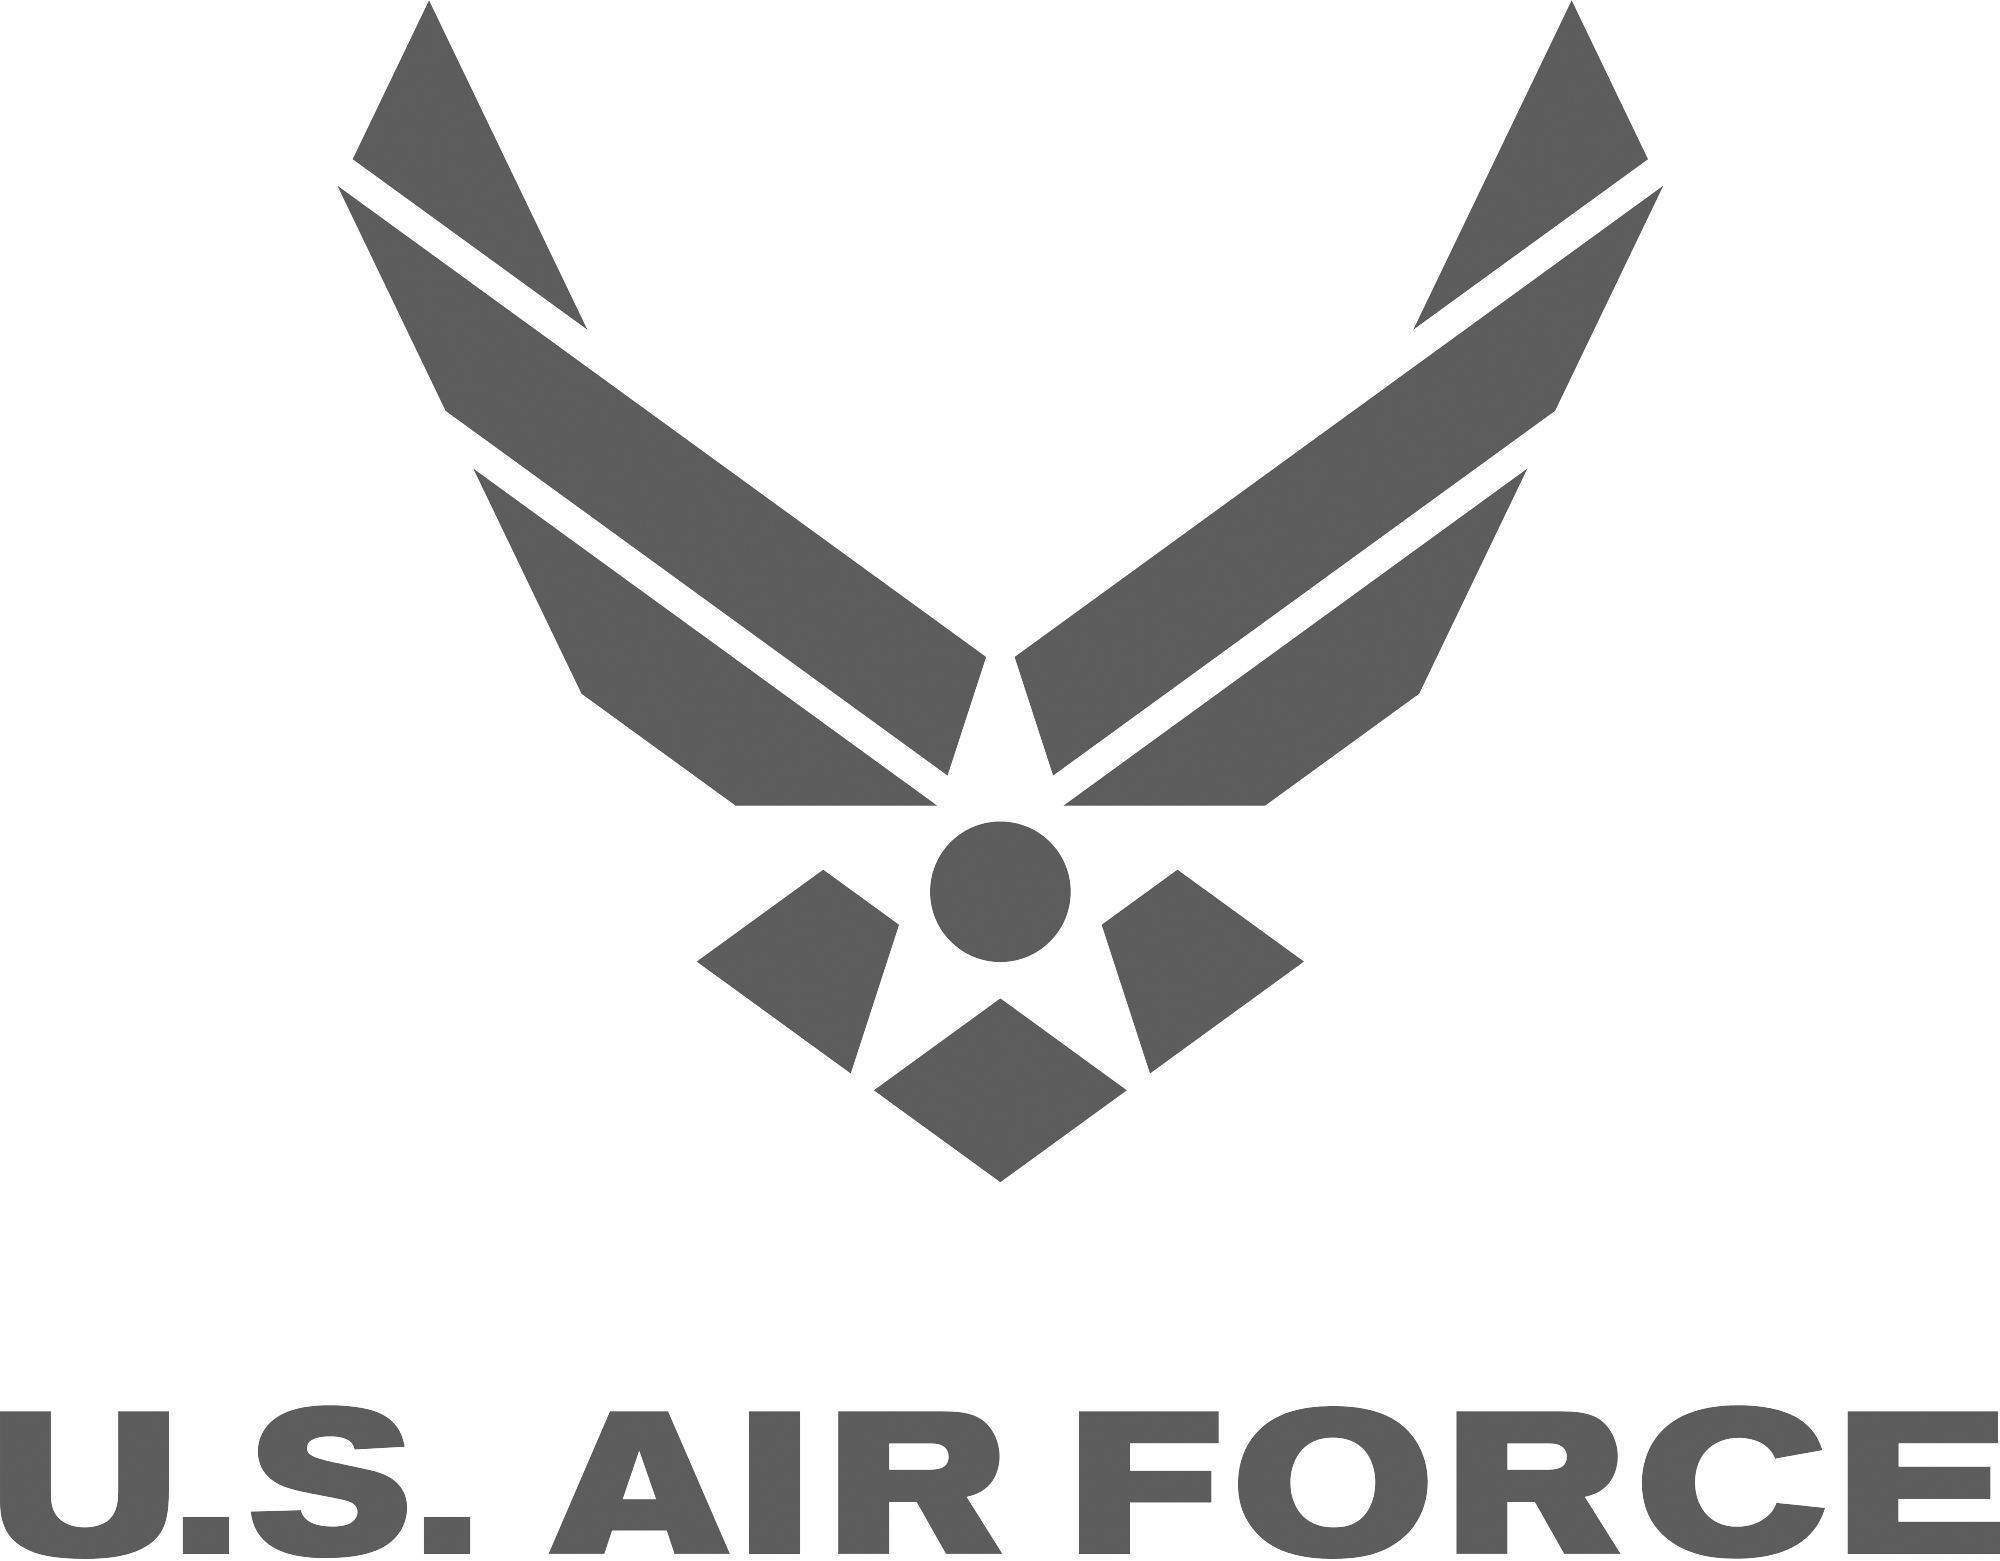 US airforce logo grey 2